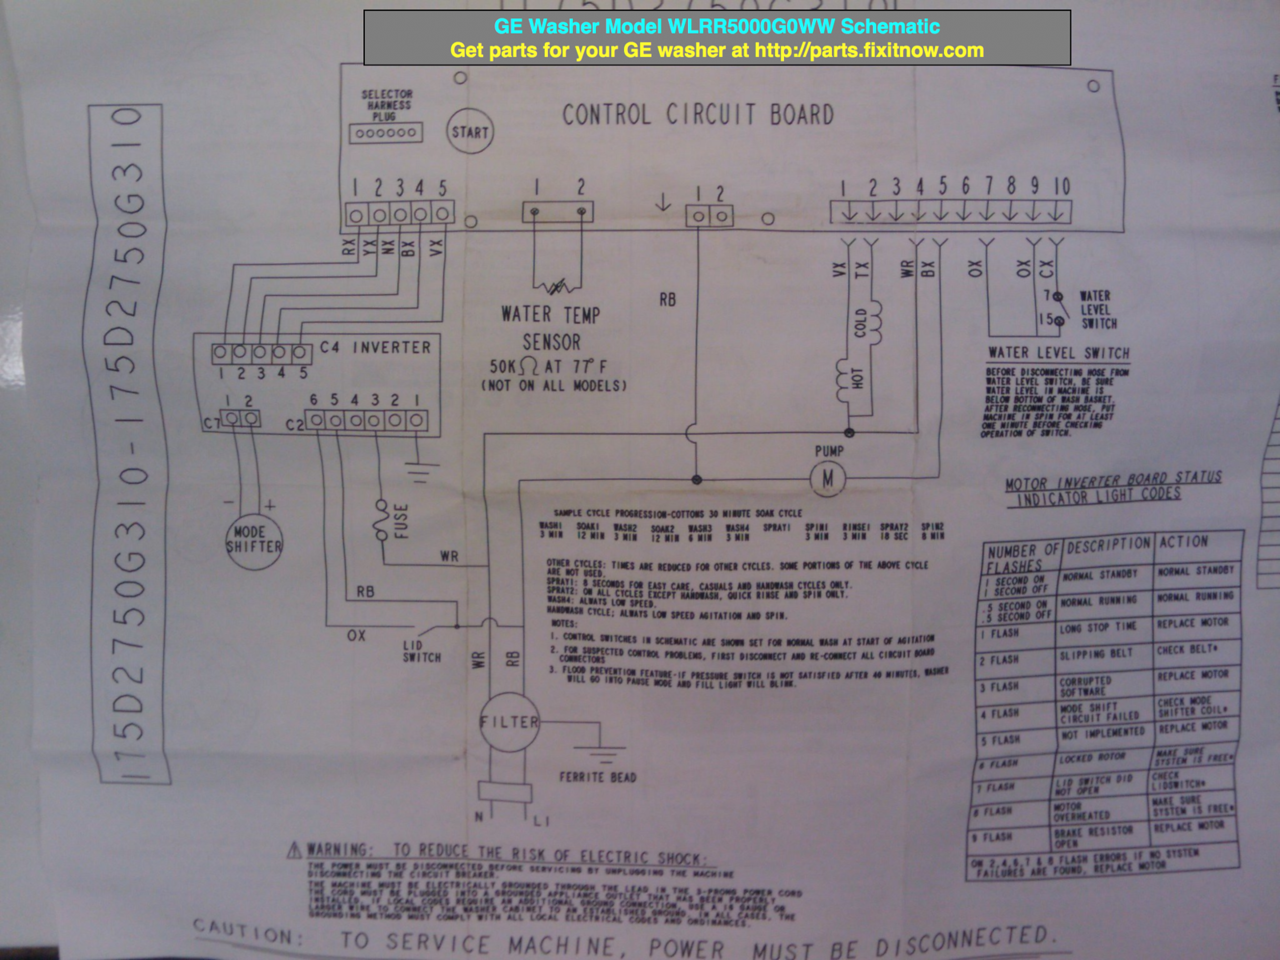 Wiring Diagrams And Schematics Appliantology How To Read Appliance Ge Washer Model Wlrr5000g0ww Schematic